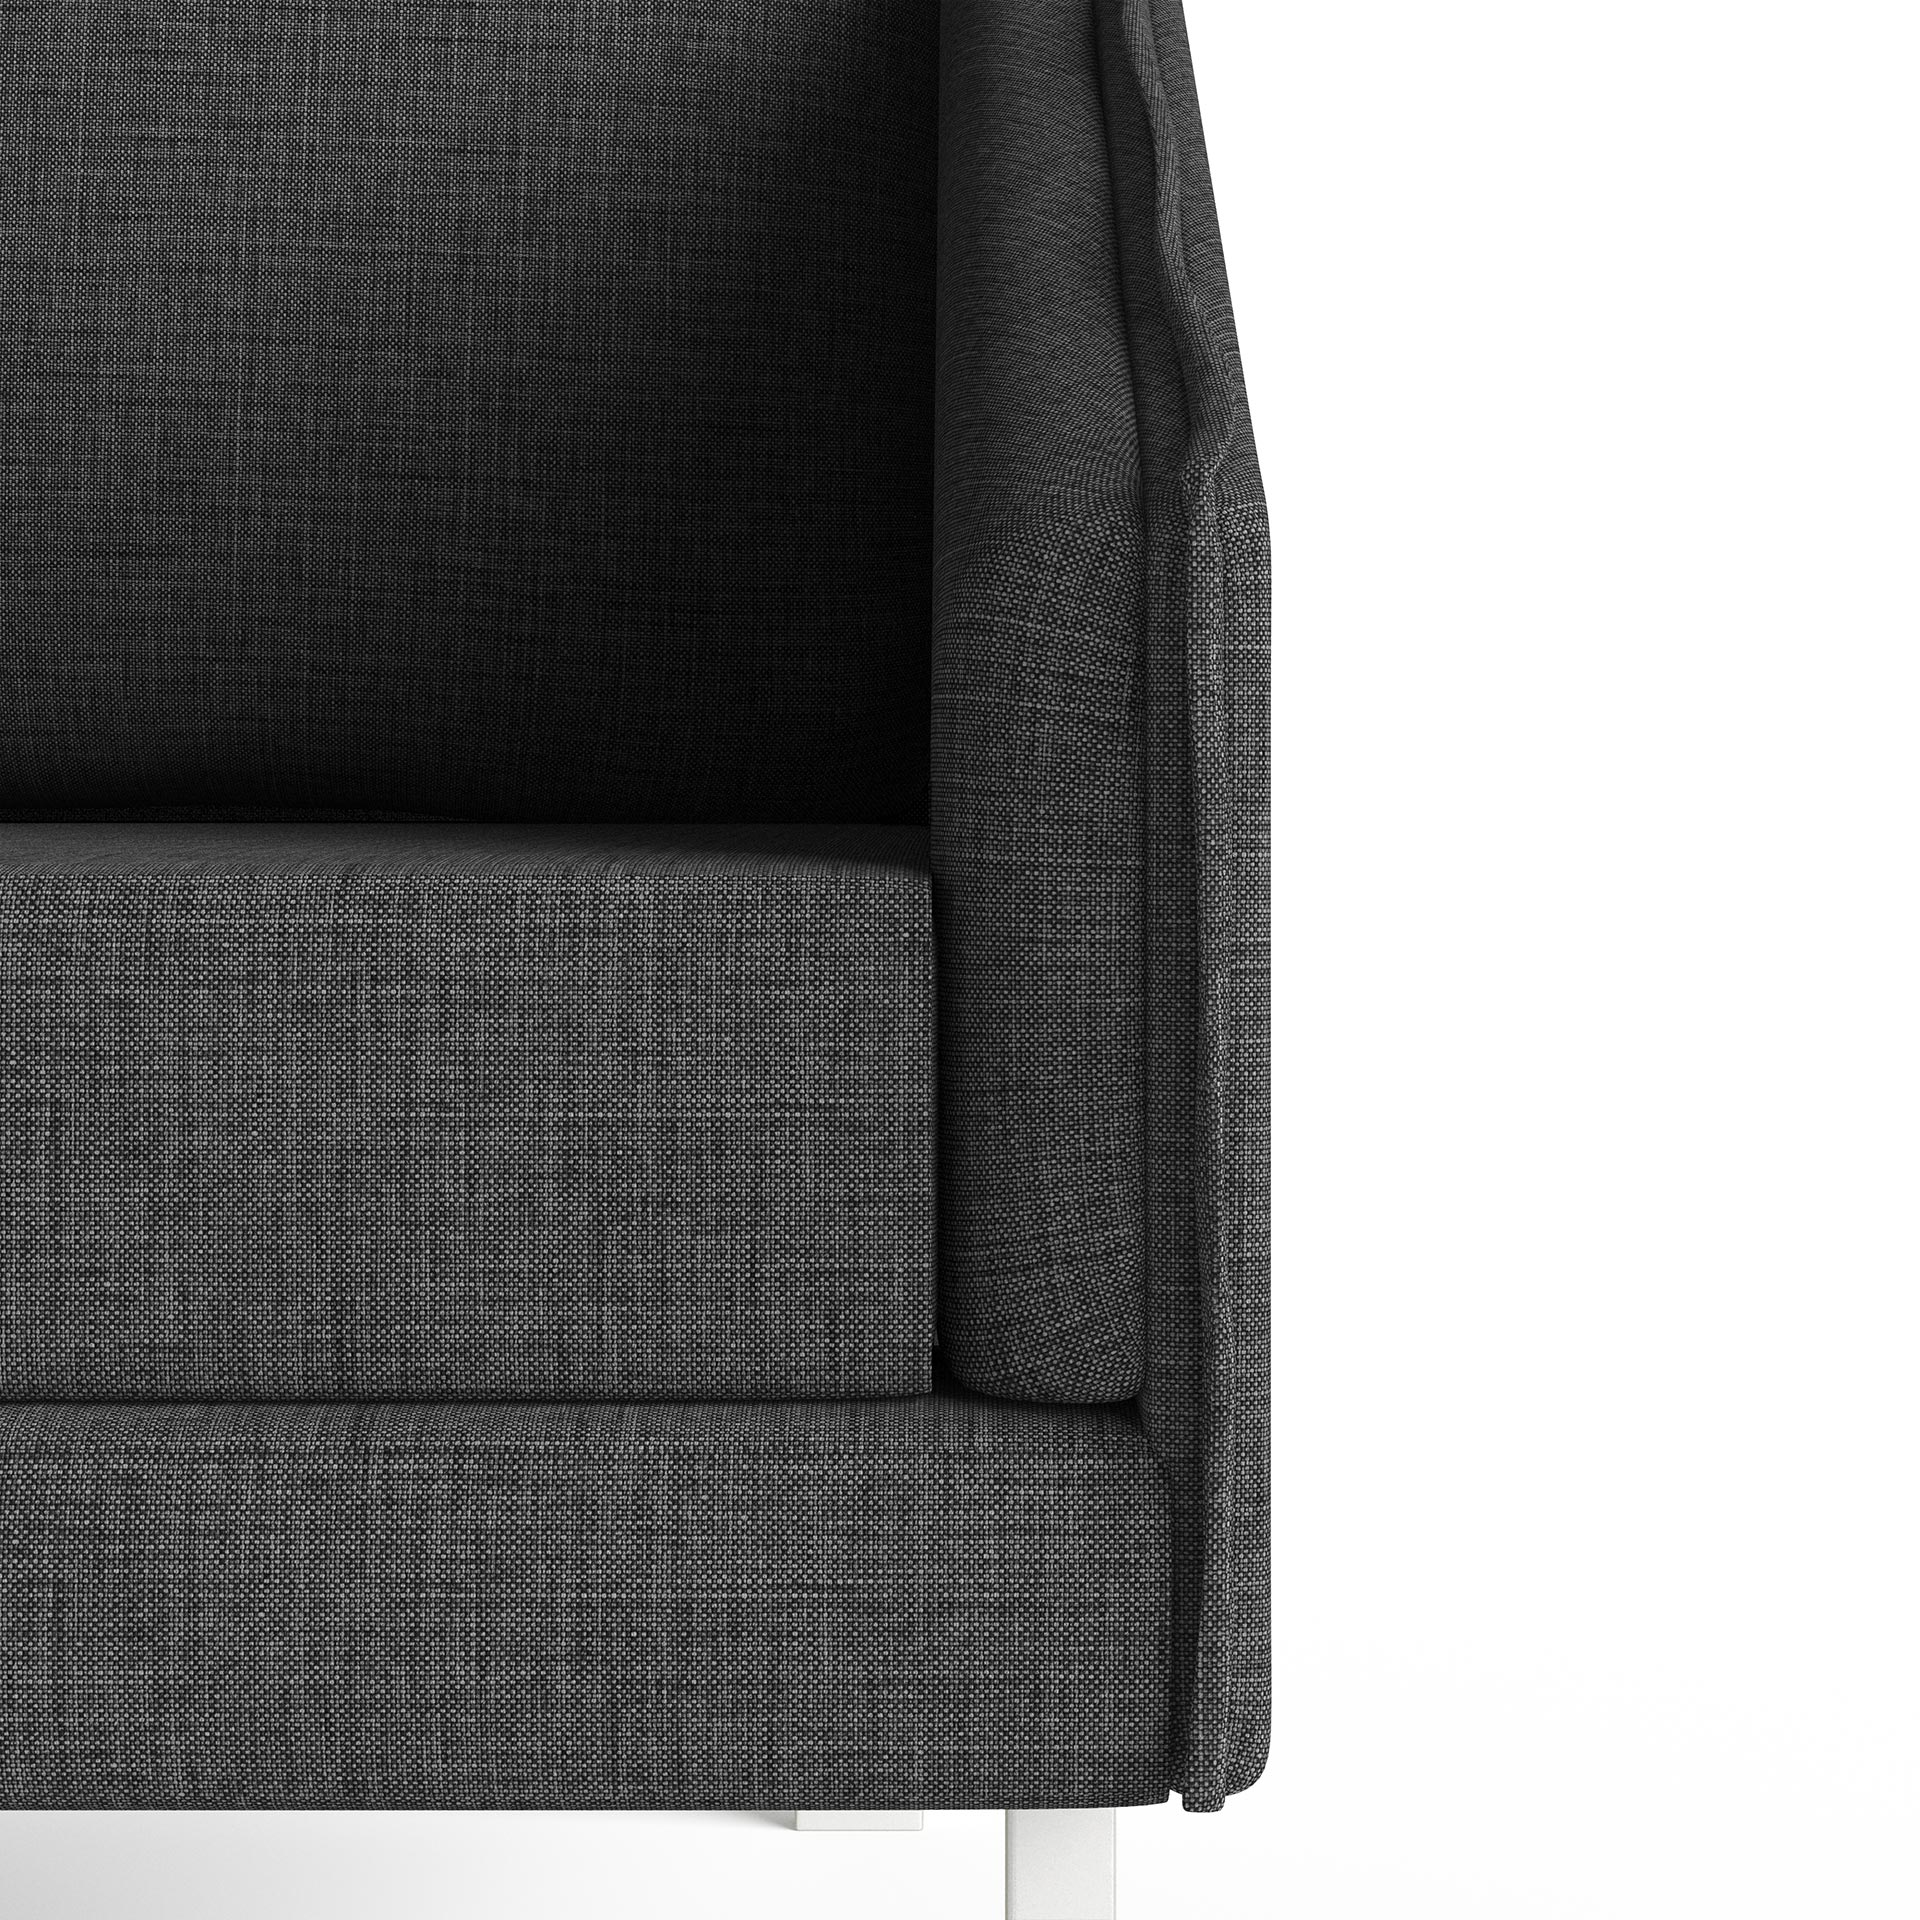 Tracey Highly Detailed Close Up Chair Dark Grey